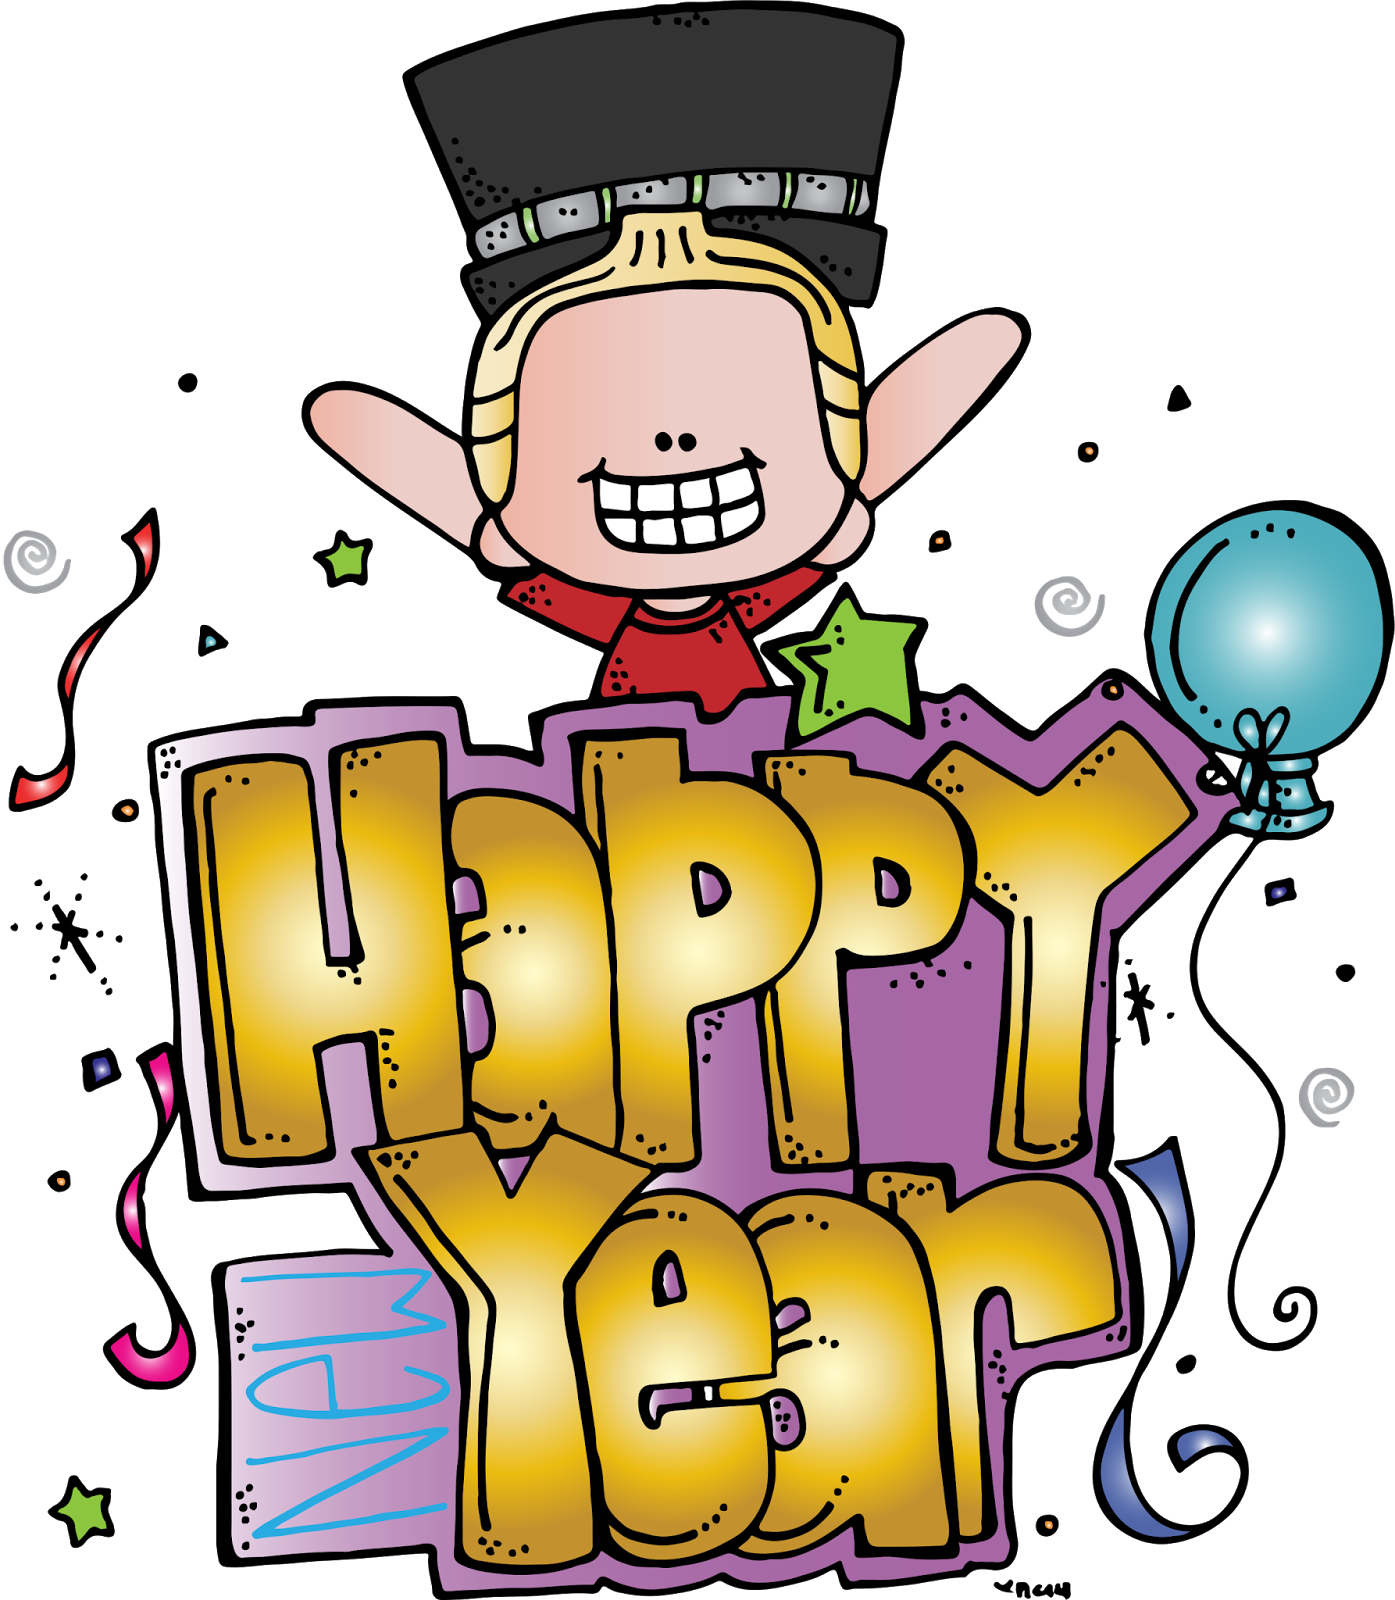 melonheadz happy new year freebie clip art new year clipart melonheadz melonheadz happy new year freebie